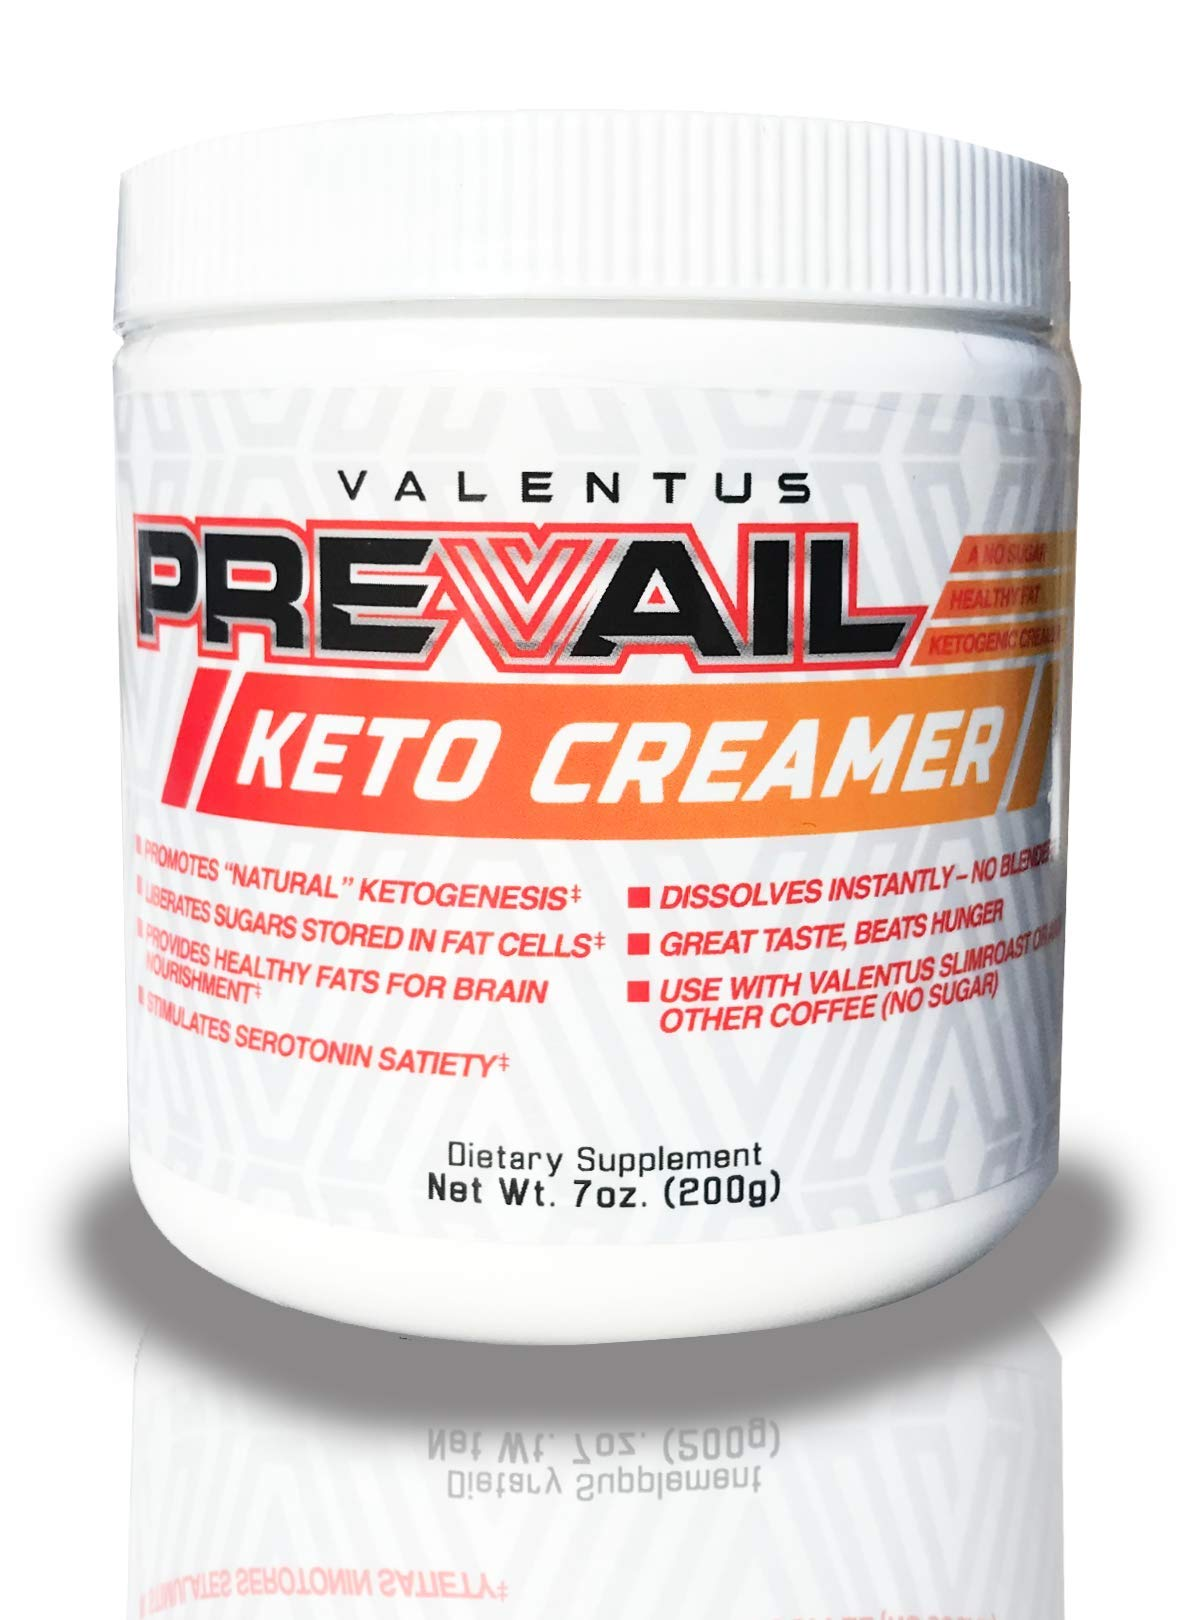 Valentus Prevail Keto Coffee Creamer: Mct Oil Powder 7 Oz | 20 Servings by VALENTUS (Image #1)